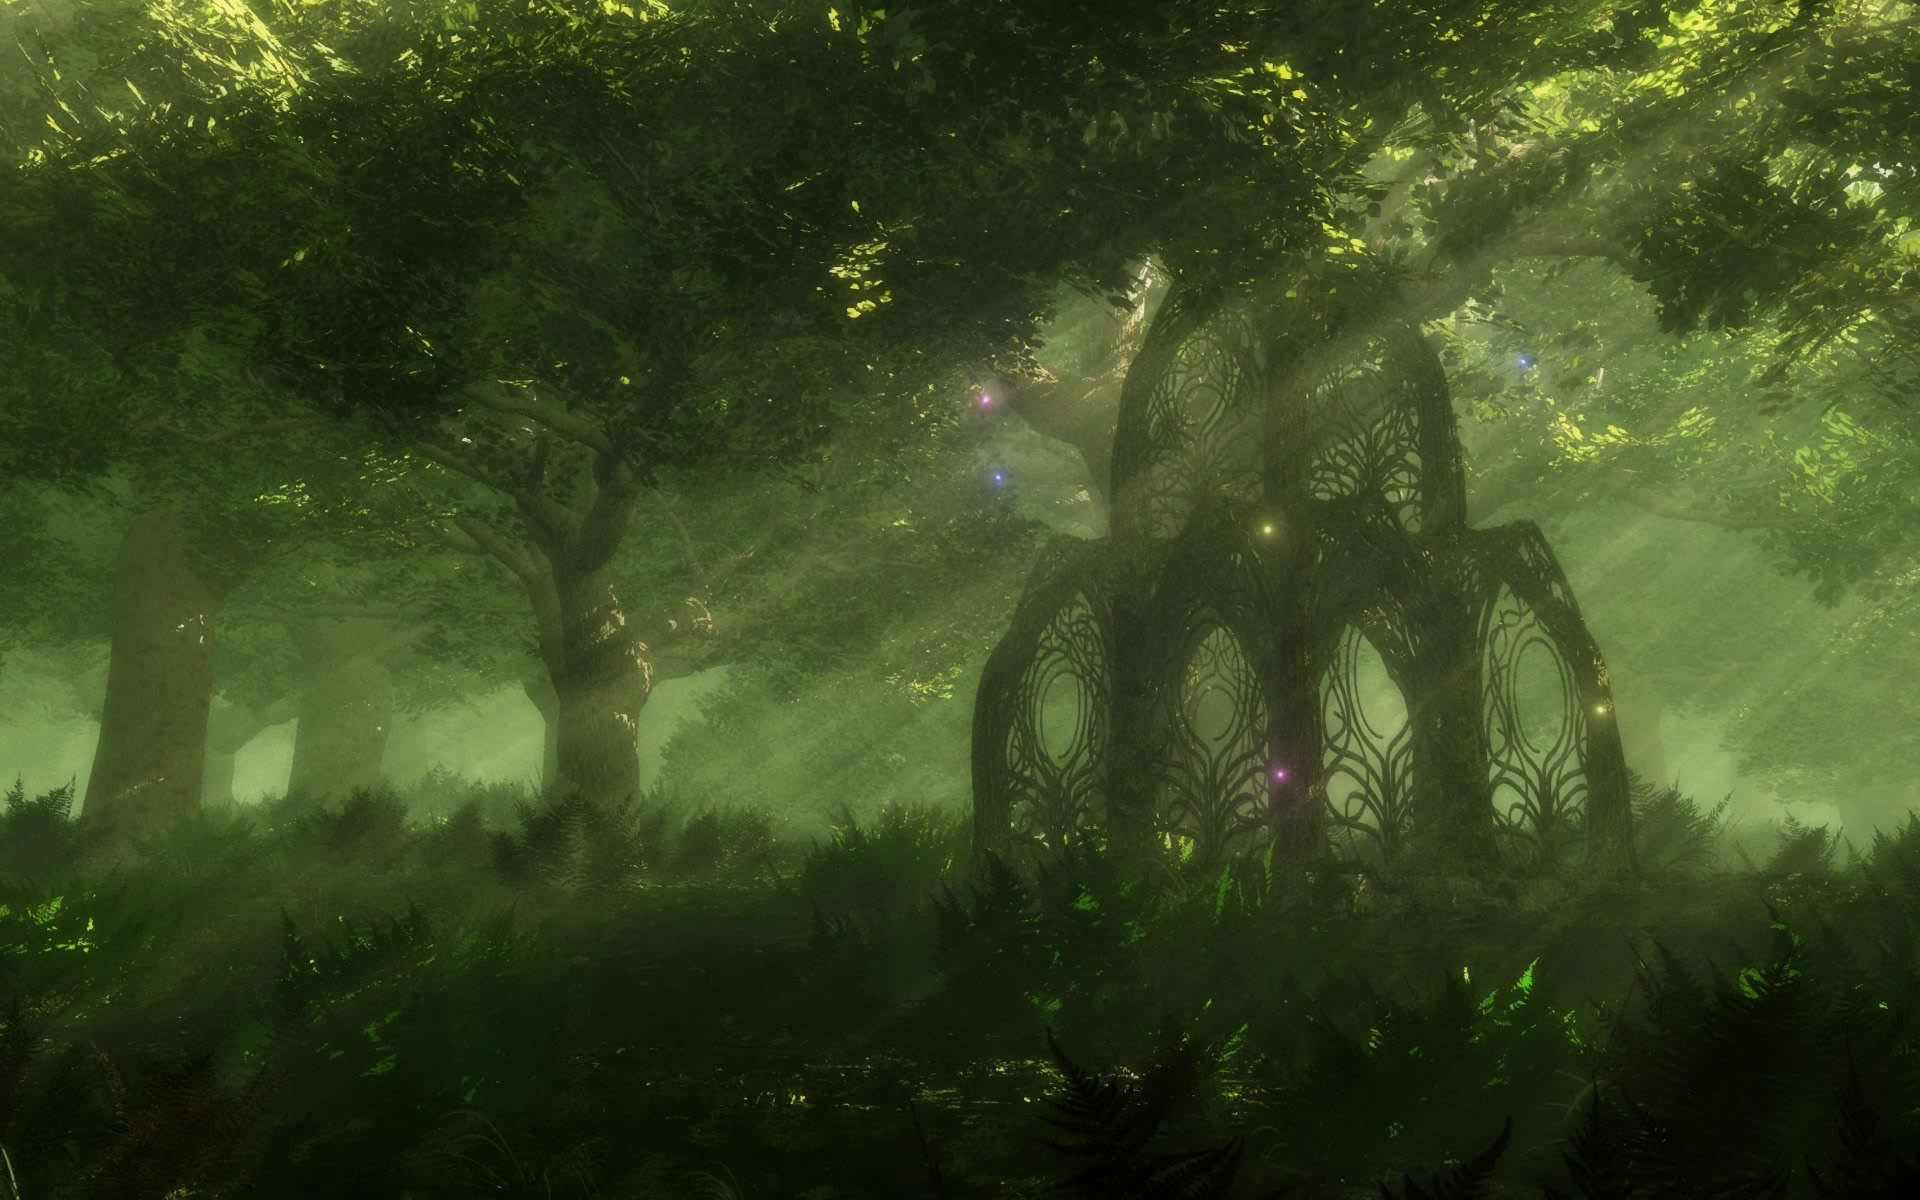 1920x1200 Fantasy Forest Wallpapers and Background Images - stmed ...